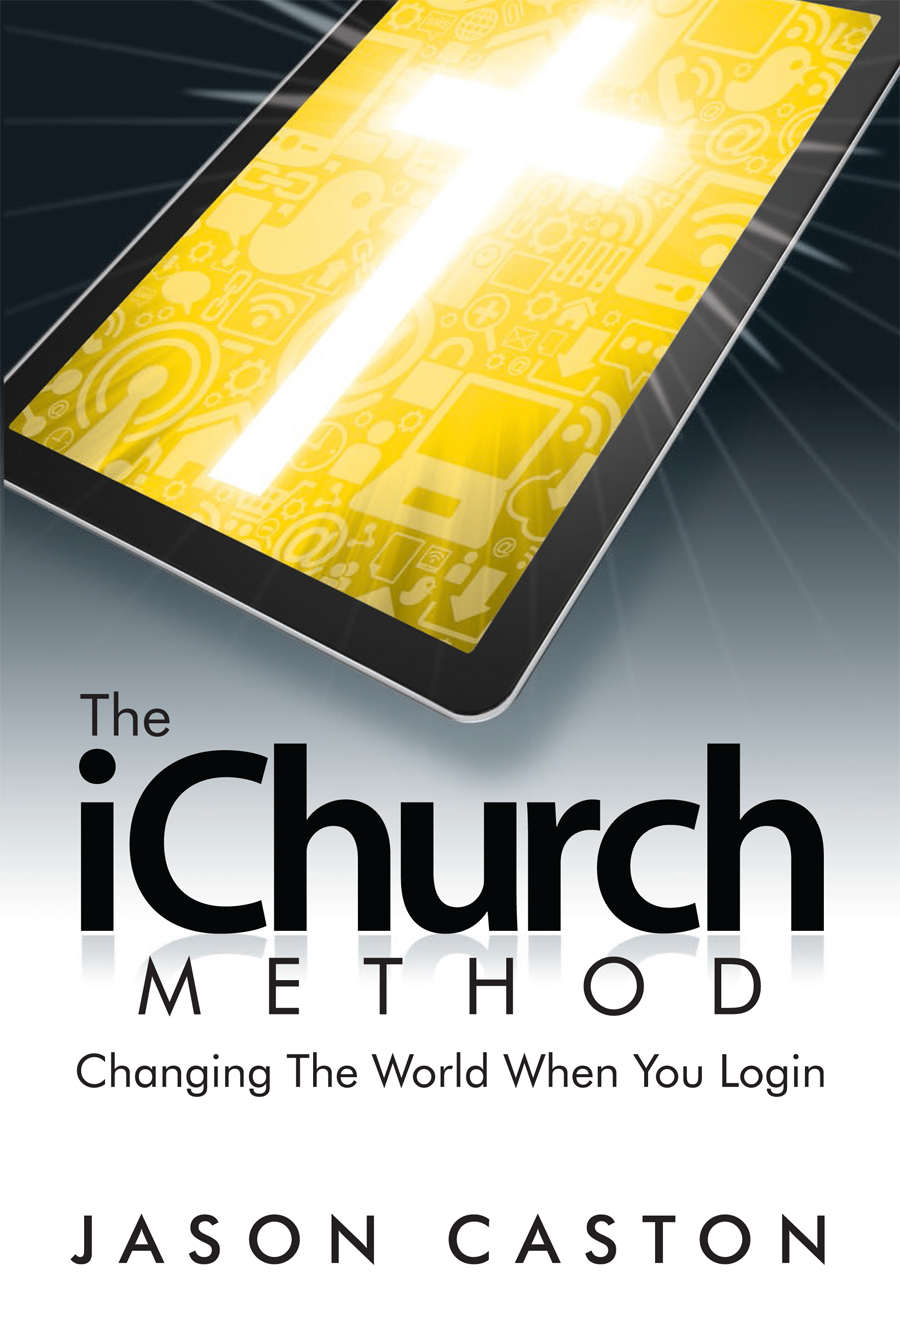 ichurch2-cover.jpg